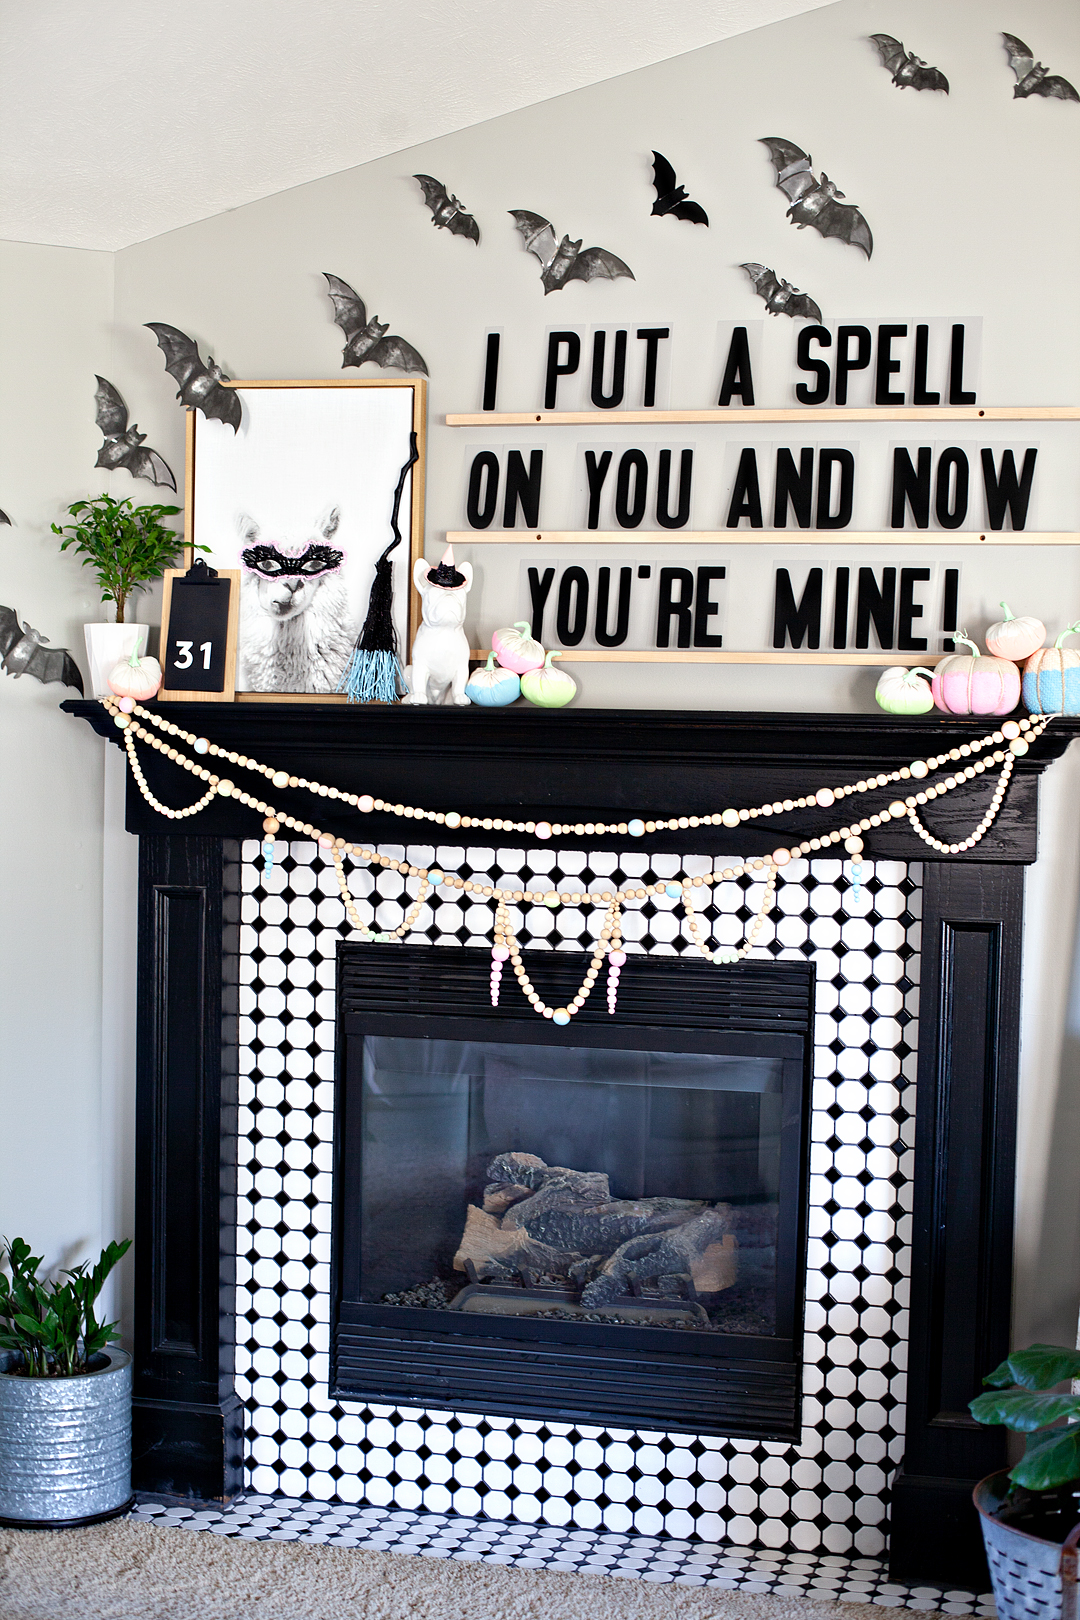 When it comes to my typical style choices I typically stick with classic and timeless. However, I also have a real love of fun and whimsey that sneaks out every once in a while.  This year I've created a whimsical mantel using all kinds of fun finds from DecoArt, Target & Refined Design for my whimsical NEON Halloween mantel!